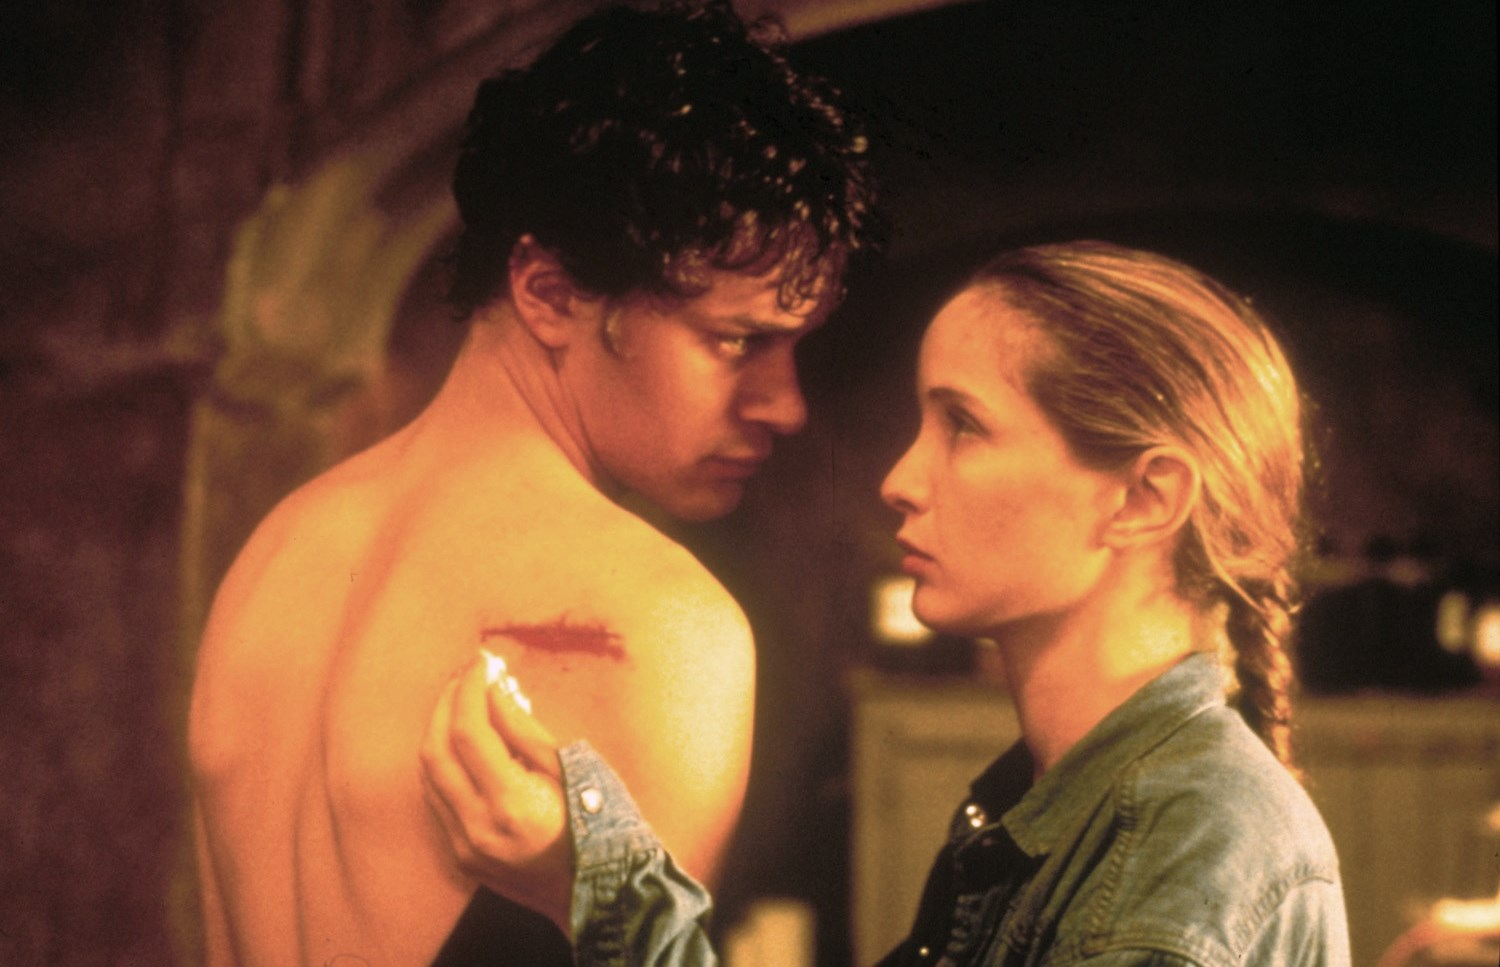 American tourist Tom Everett Scott and French girl Julie Delpy in An American Werewolf in Paris (1997)